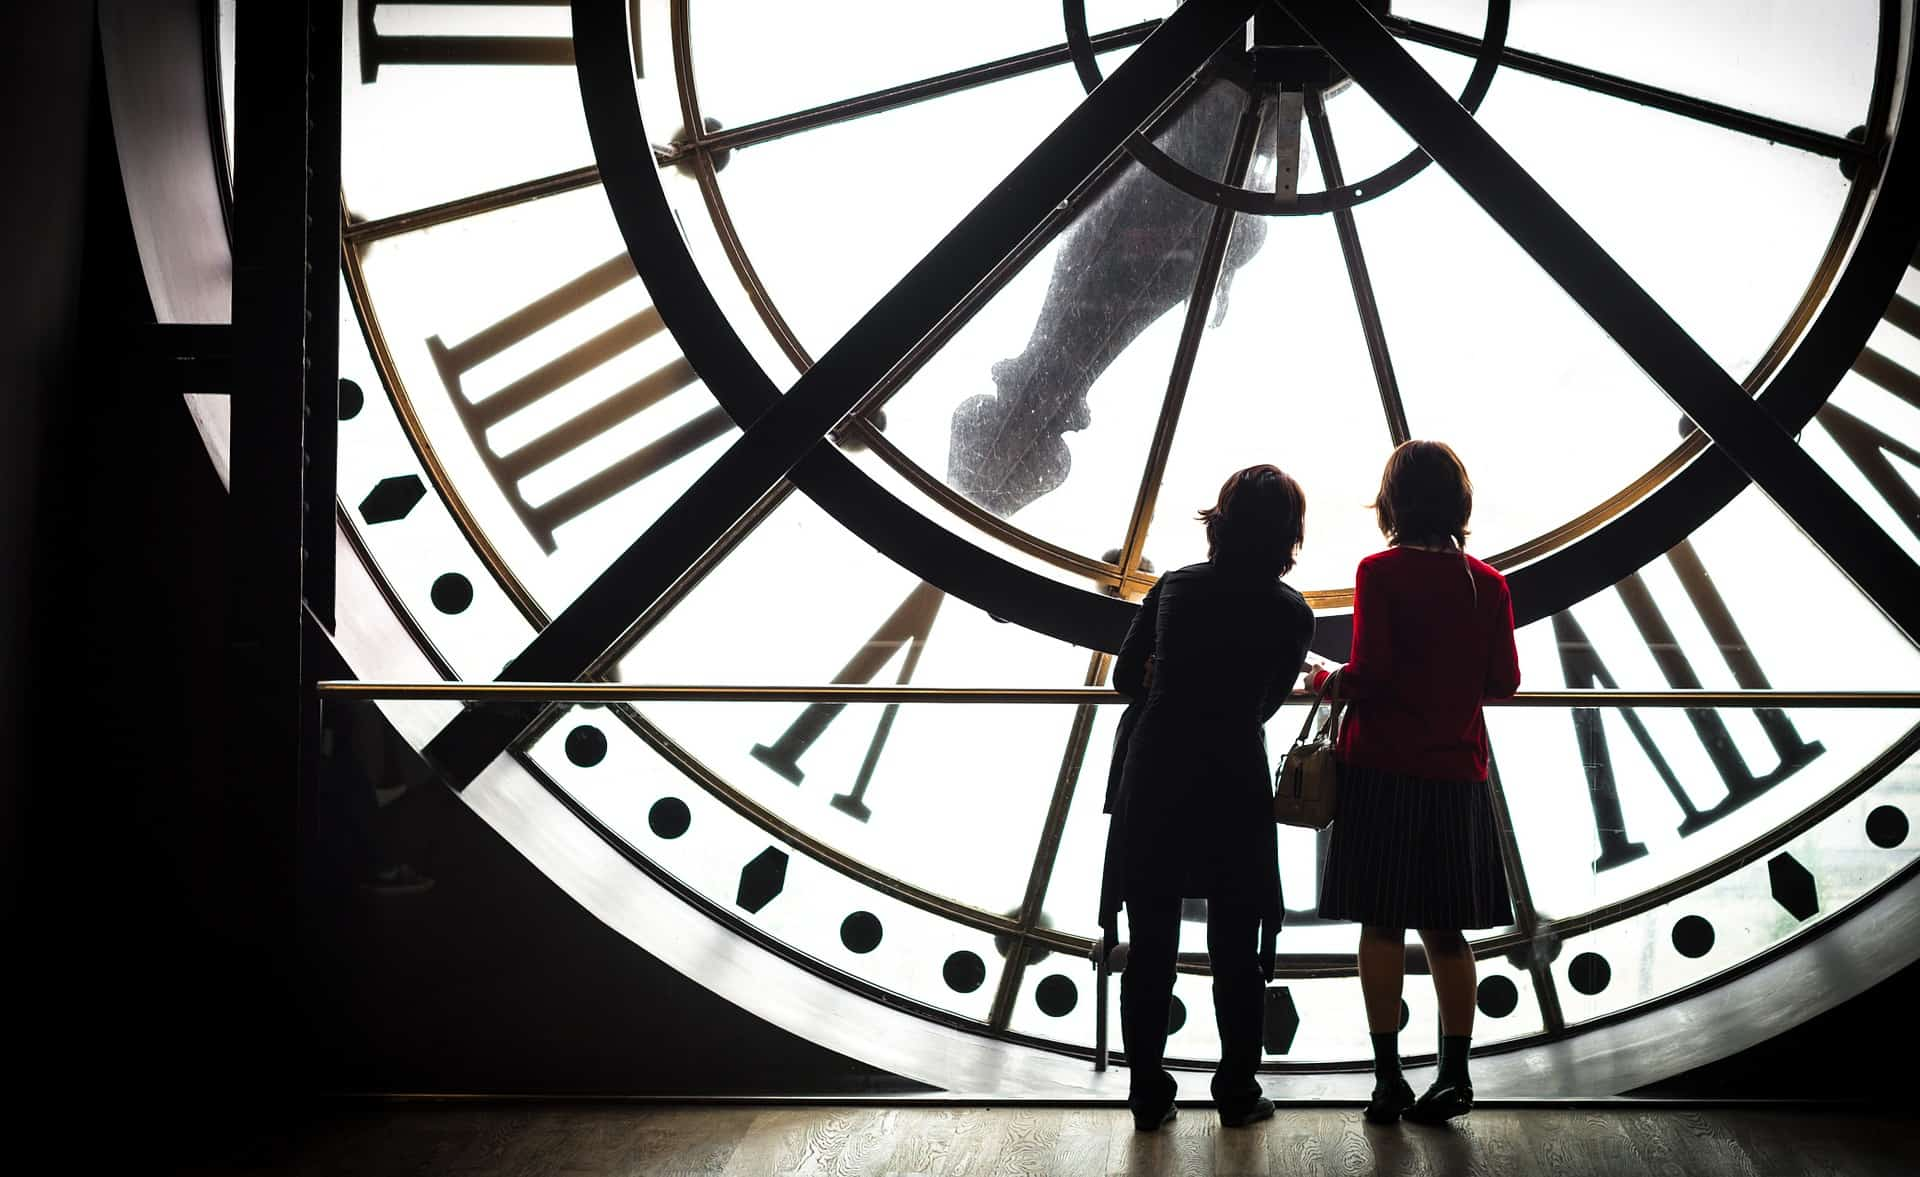 the view through the old clock in the Musée d'Orsay